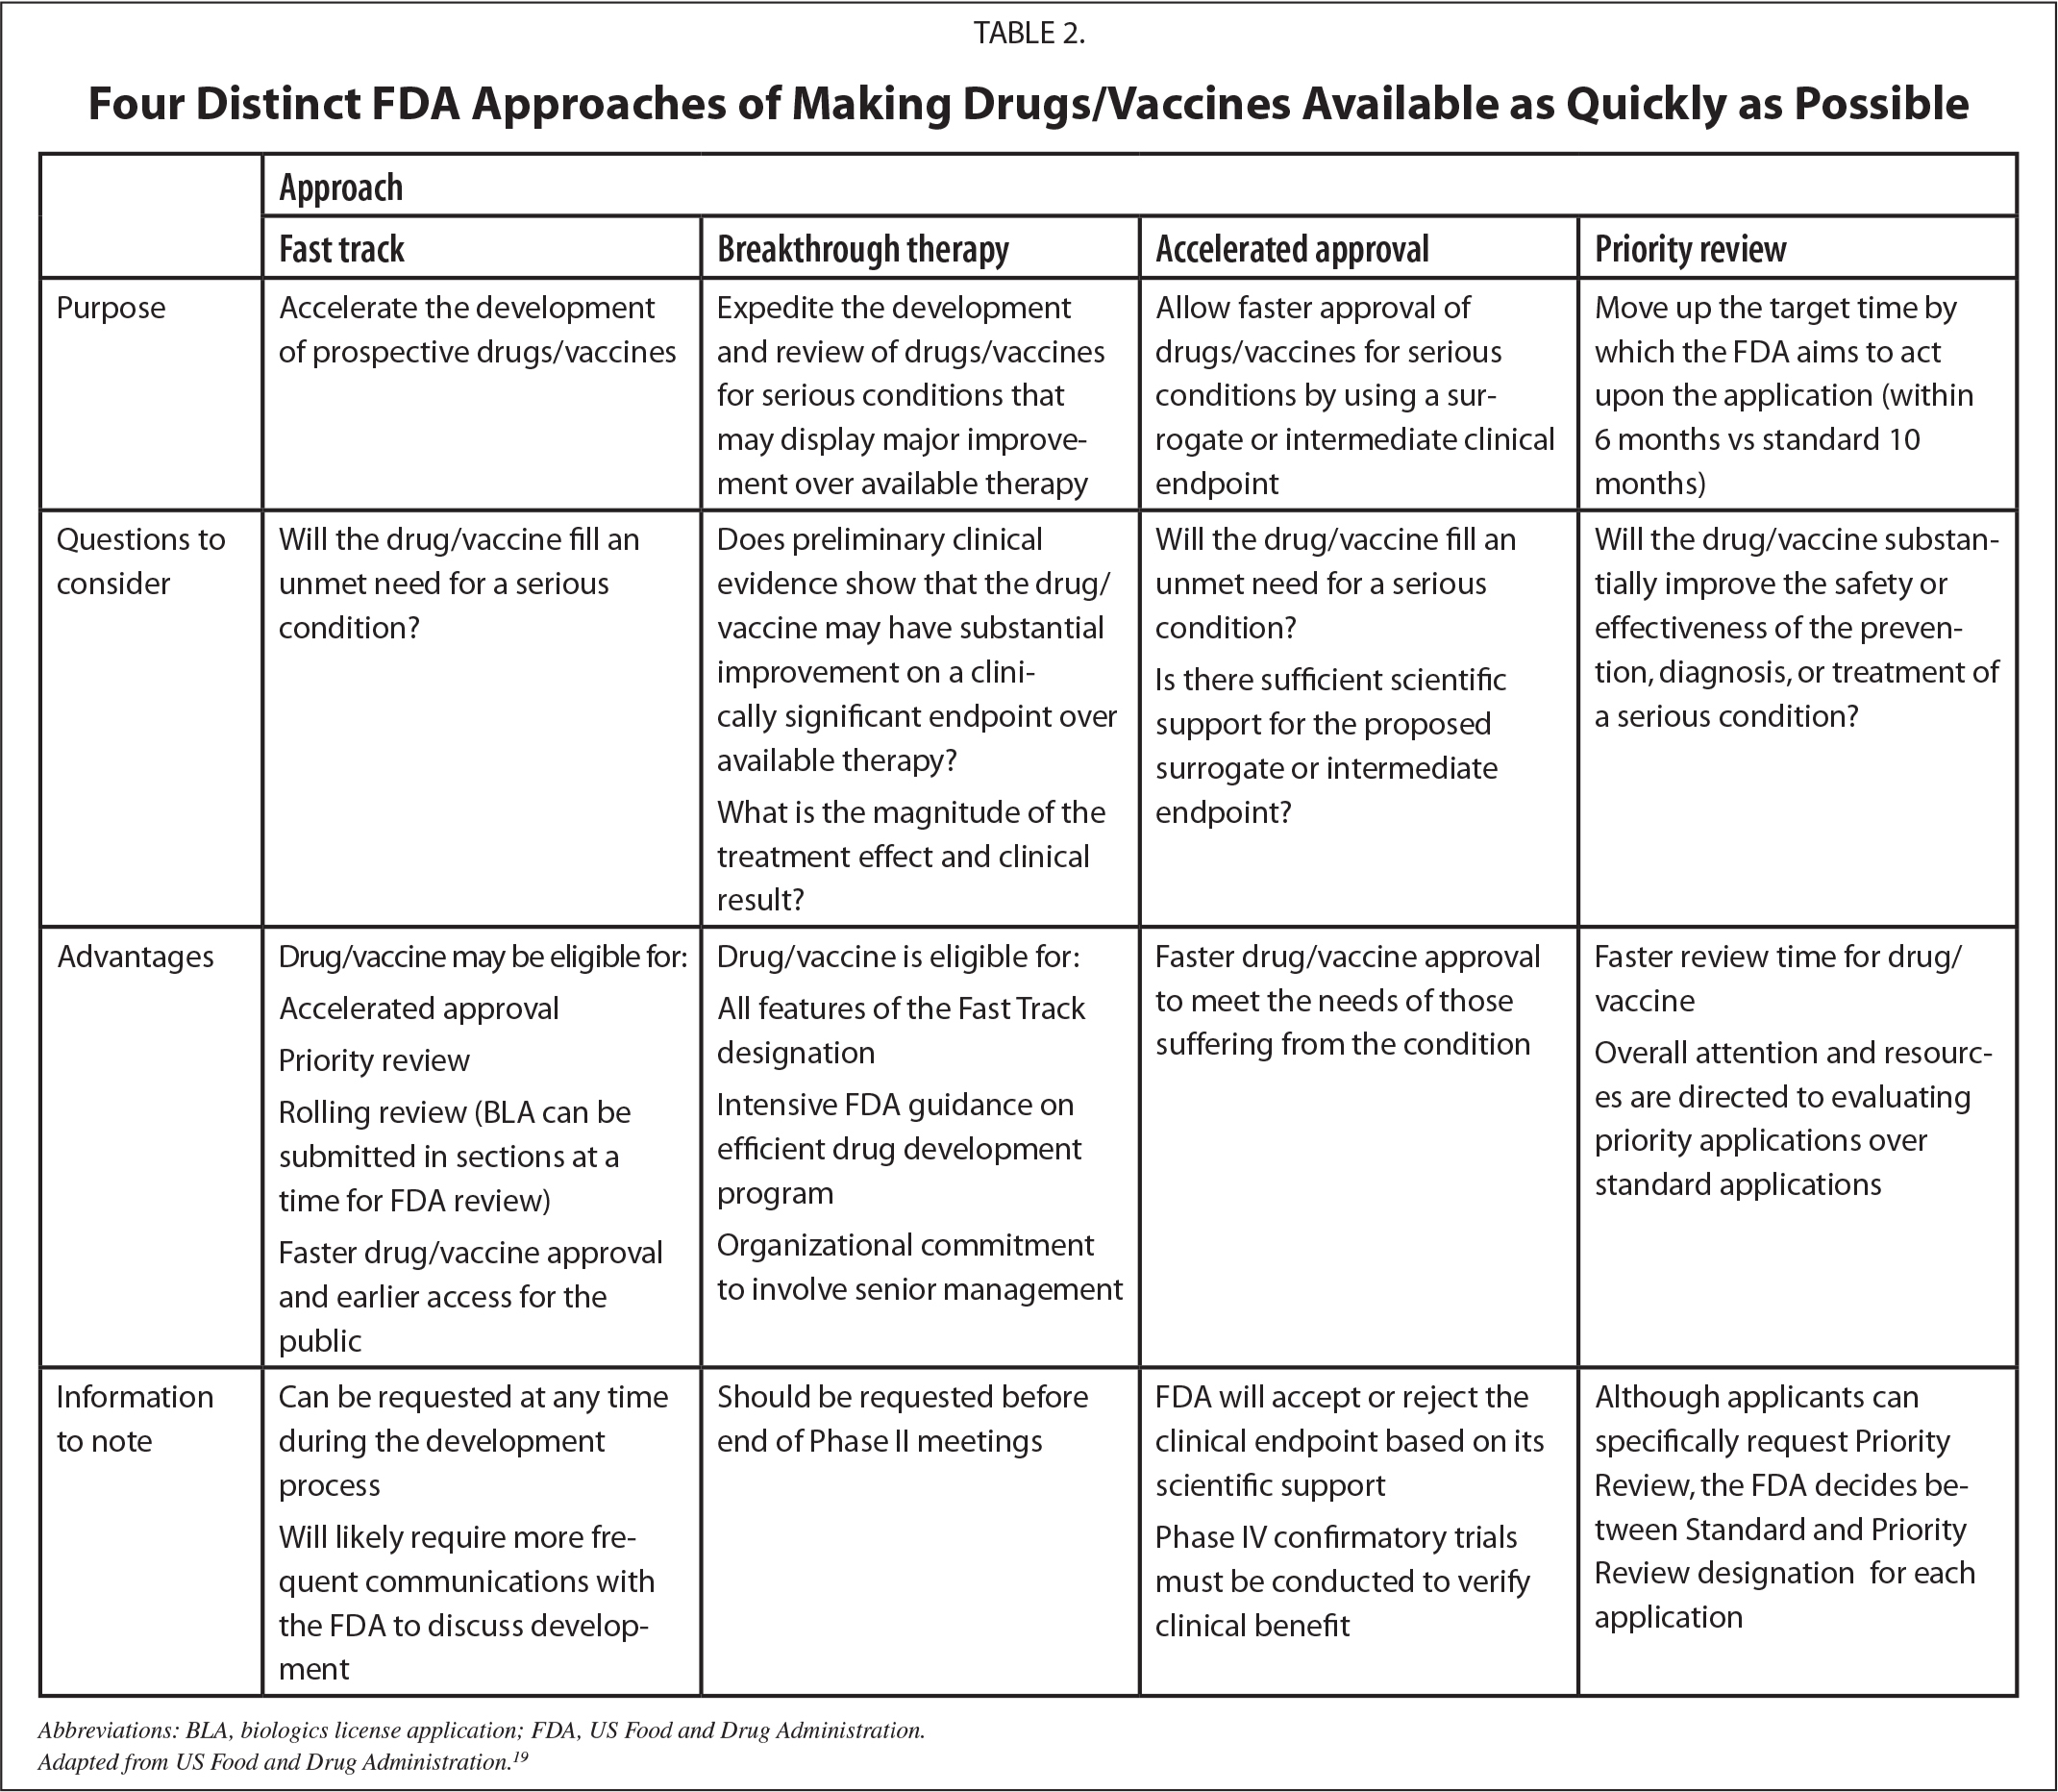 Four Distinct FDA Approaches of Making Drugs/Vaccines Available as Quickly as Possible